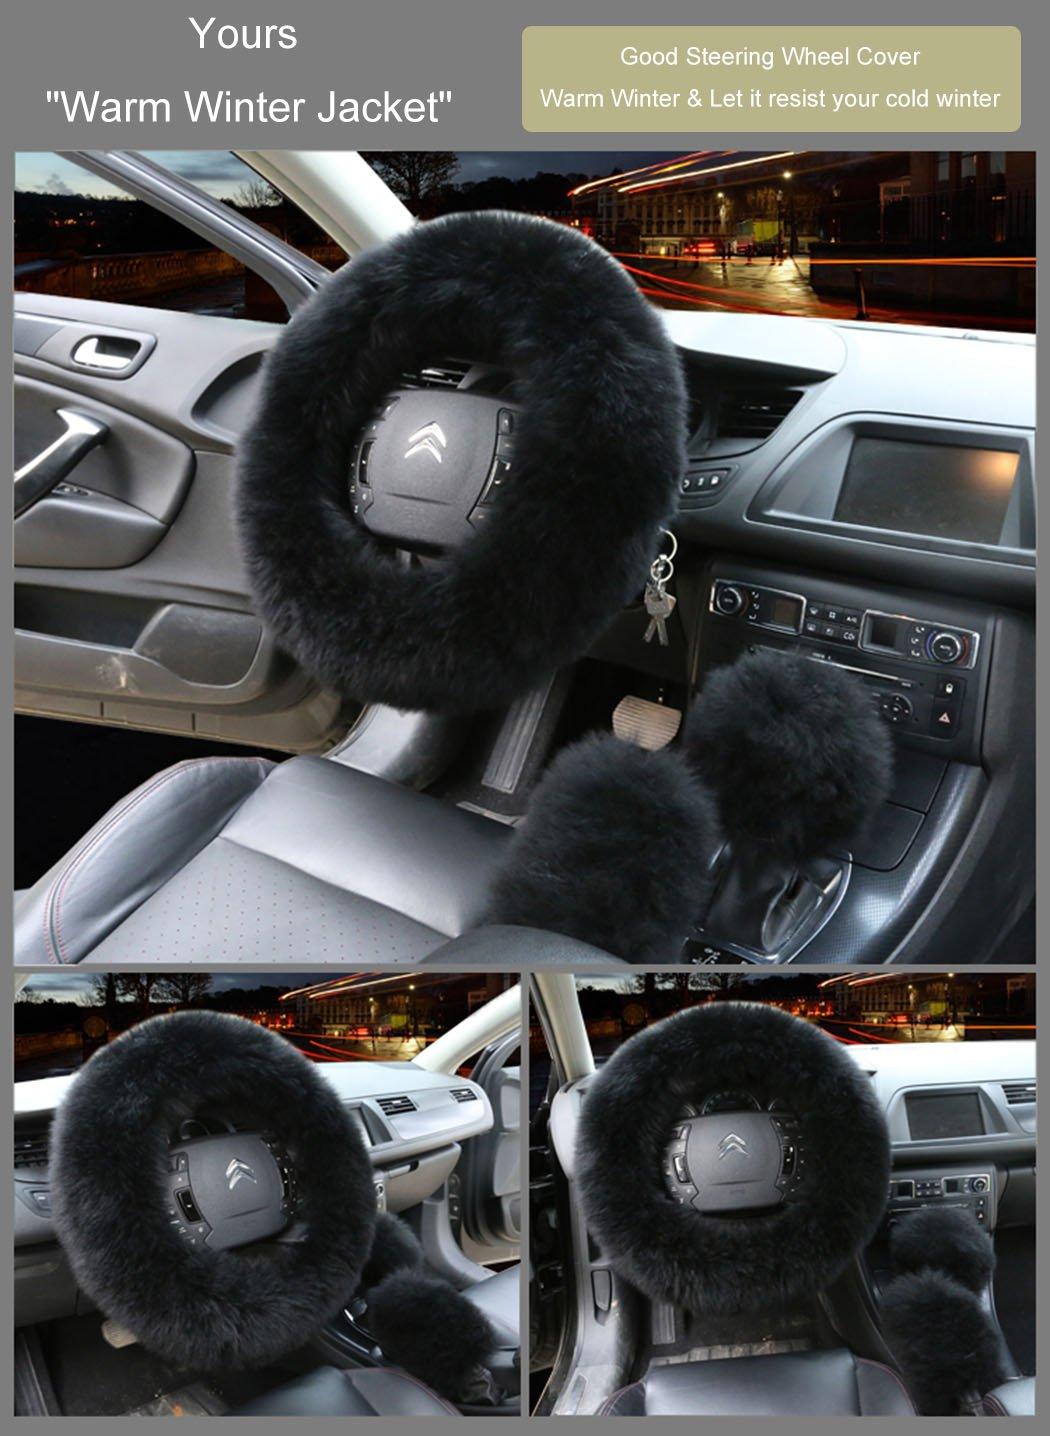 Younglingn Car Steering Wheel Cover Gear Shift Handbrake Fuzzy Cover 1 Set 3 Pcs Multi-colored with Winter Warm Pure Wool Fashion for Girl Women Ladies Universal Fit Most Car(Black)